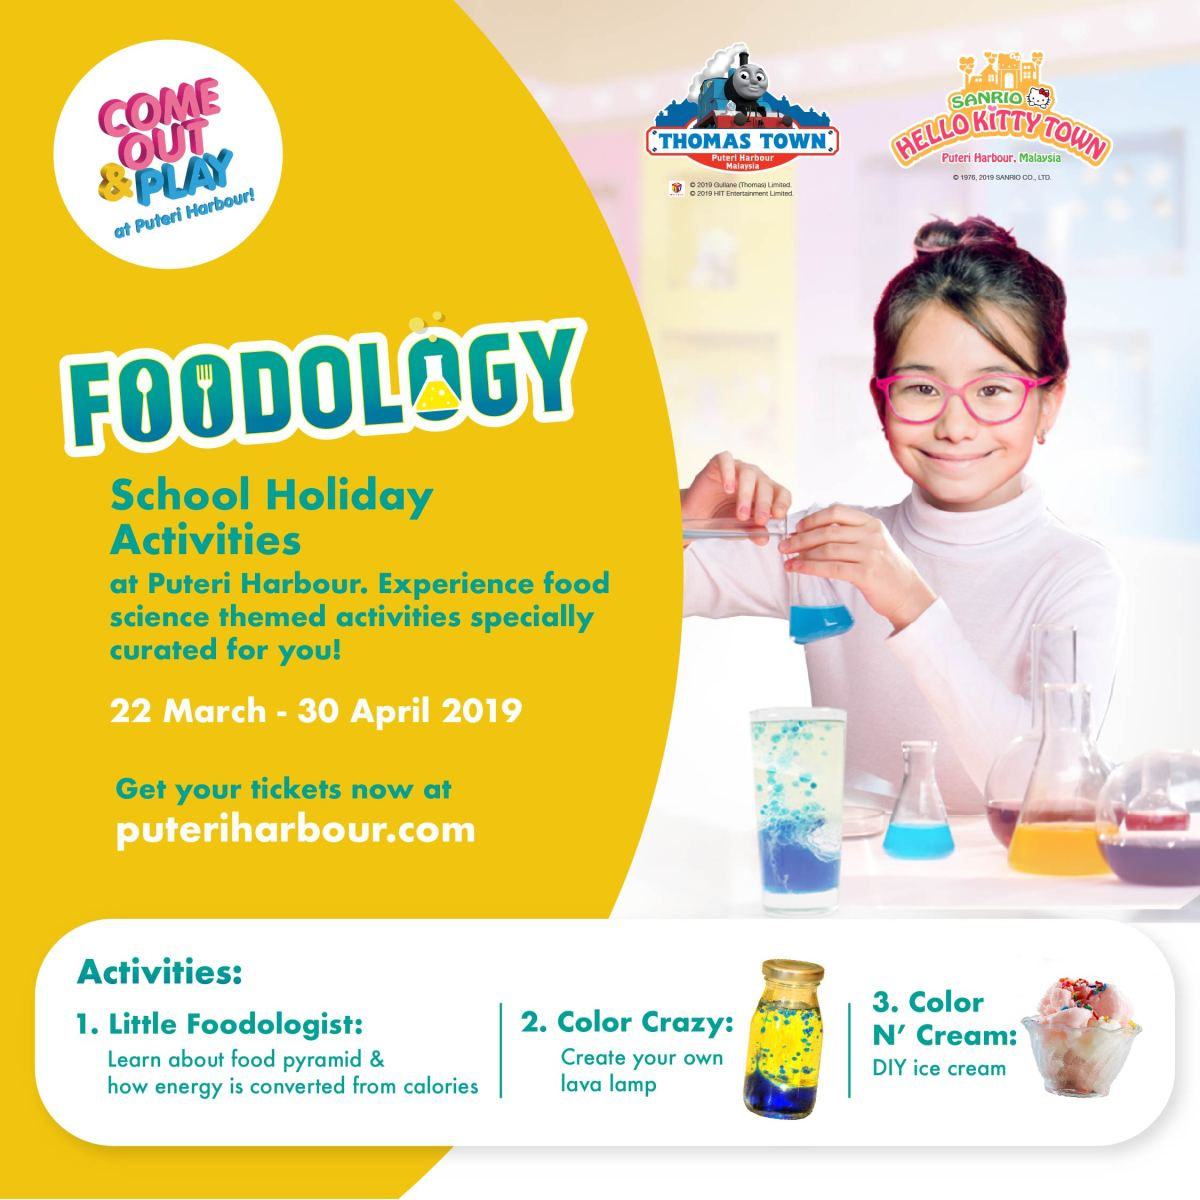 Kids! Let's Be a 'Foodologist' at THOMAS TOWN and SANRIO HELLO KITTY TOWN During This School Holiday!